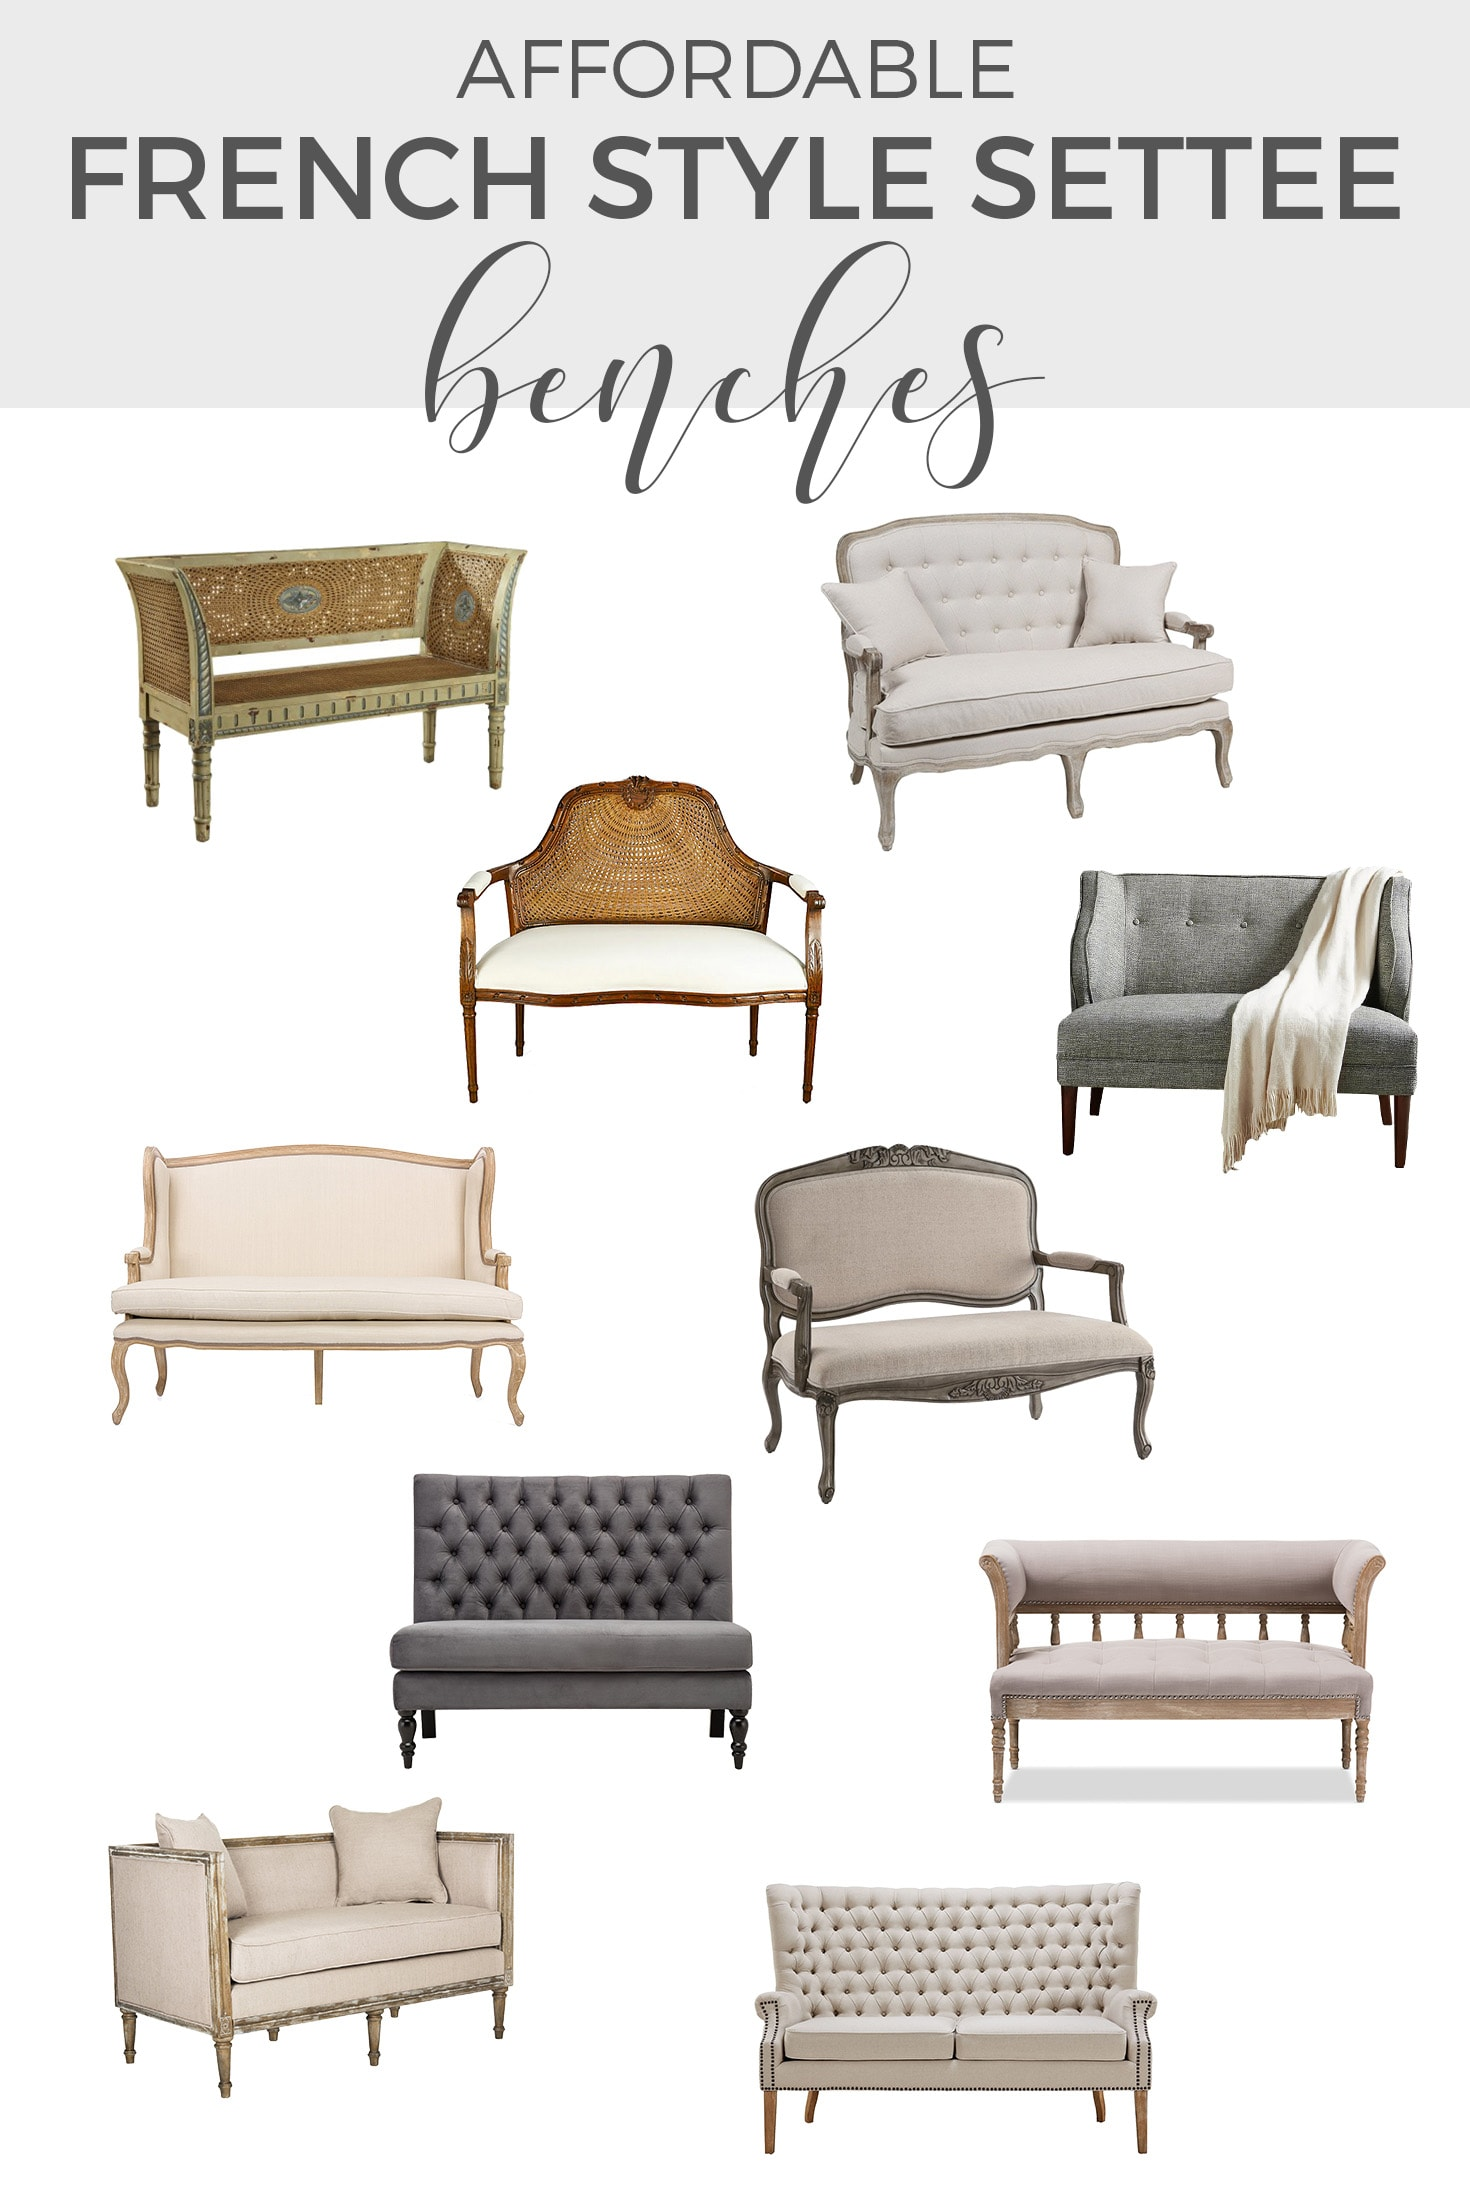 Affordable French Settee Bench